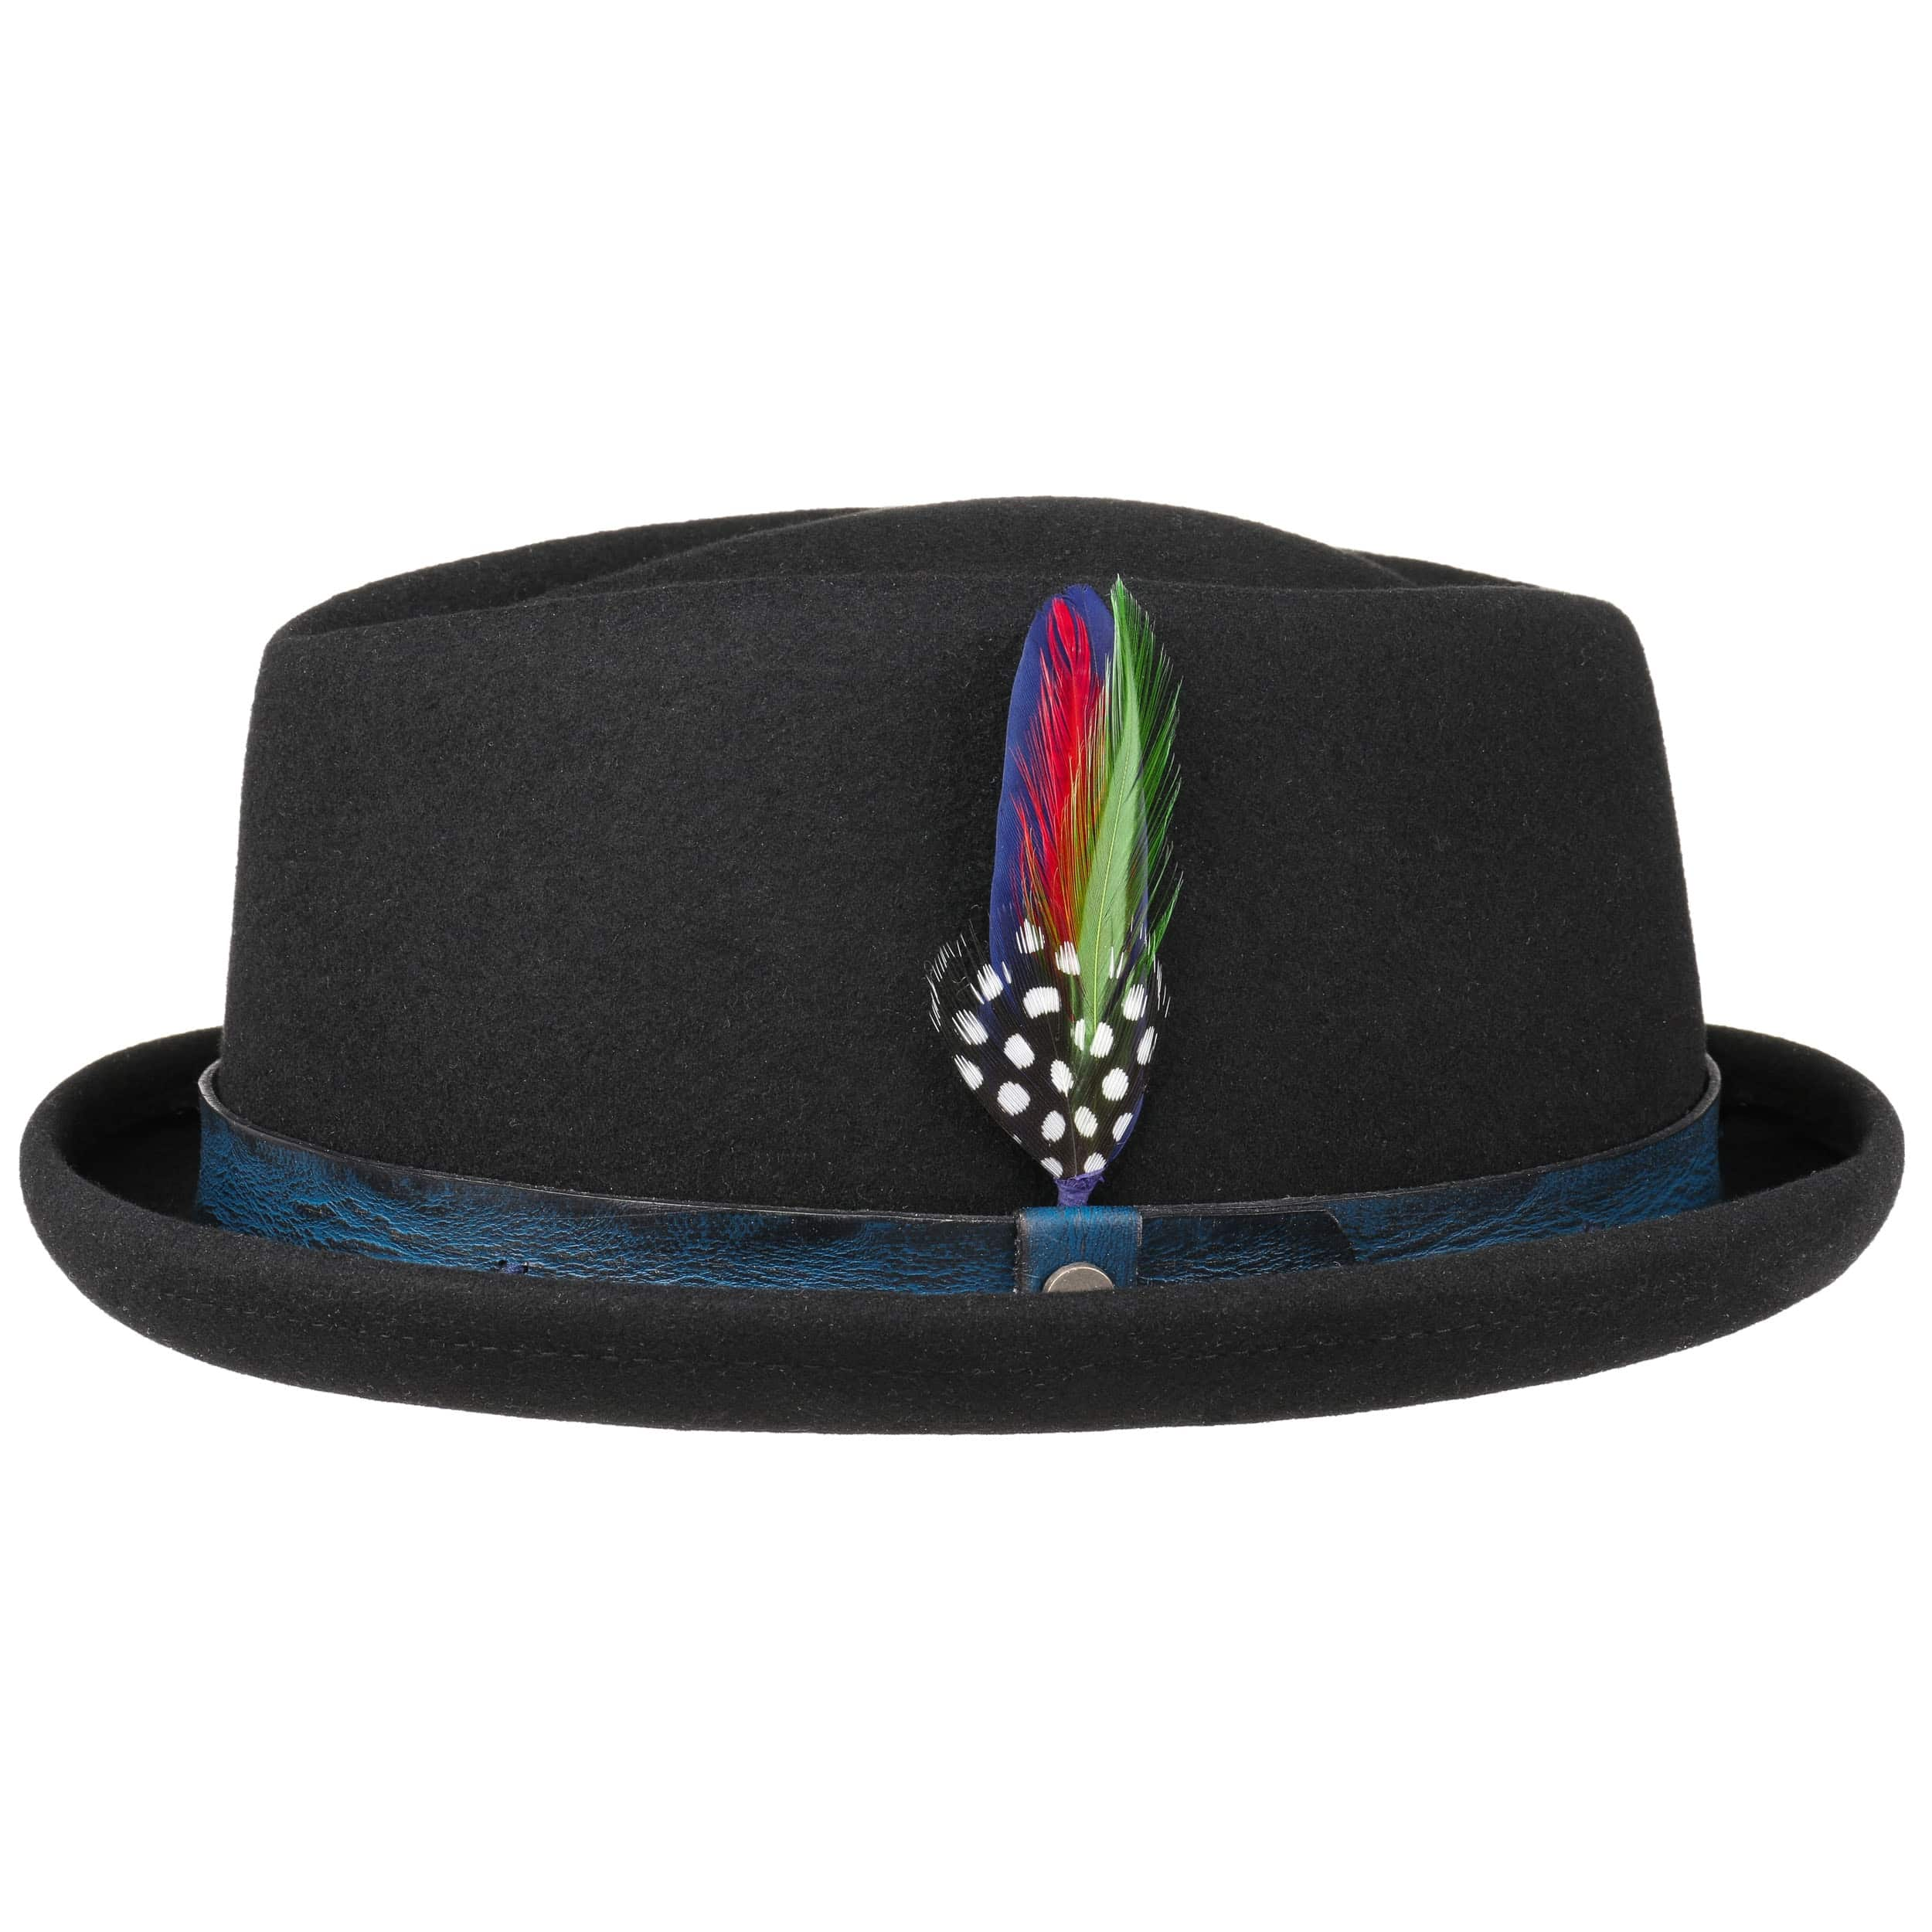 fe3aca797c0a2c Kono Pork Pie Wool Felt Hat by Stetson - 79,00 £